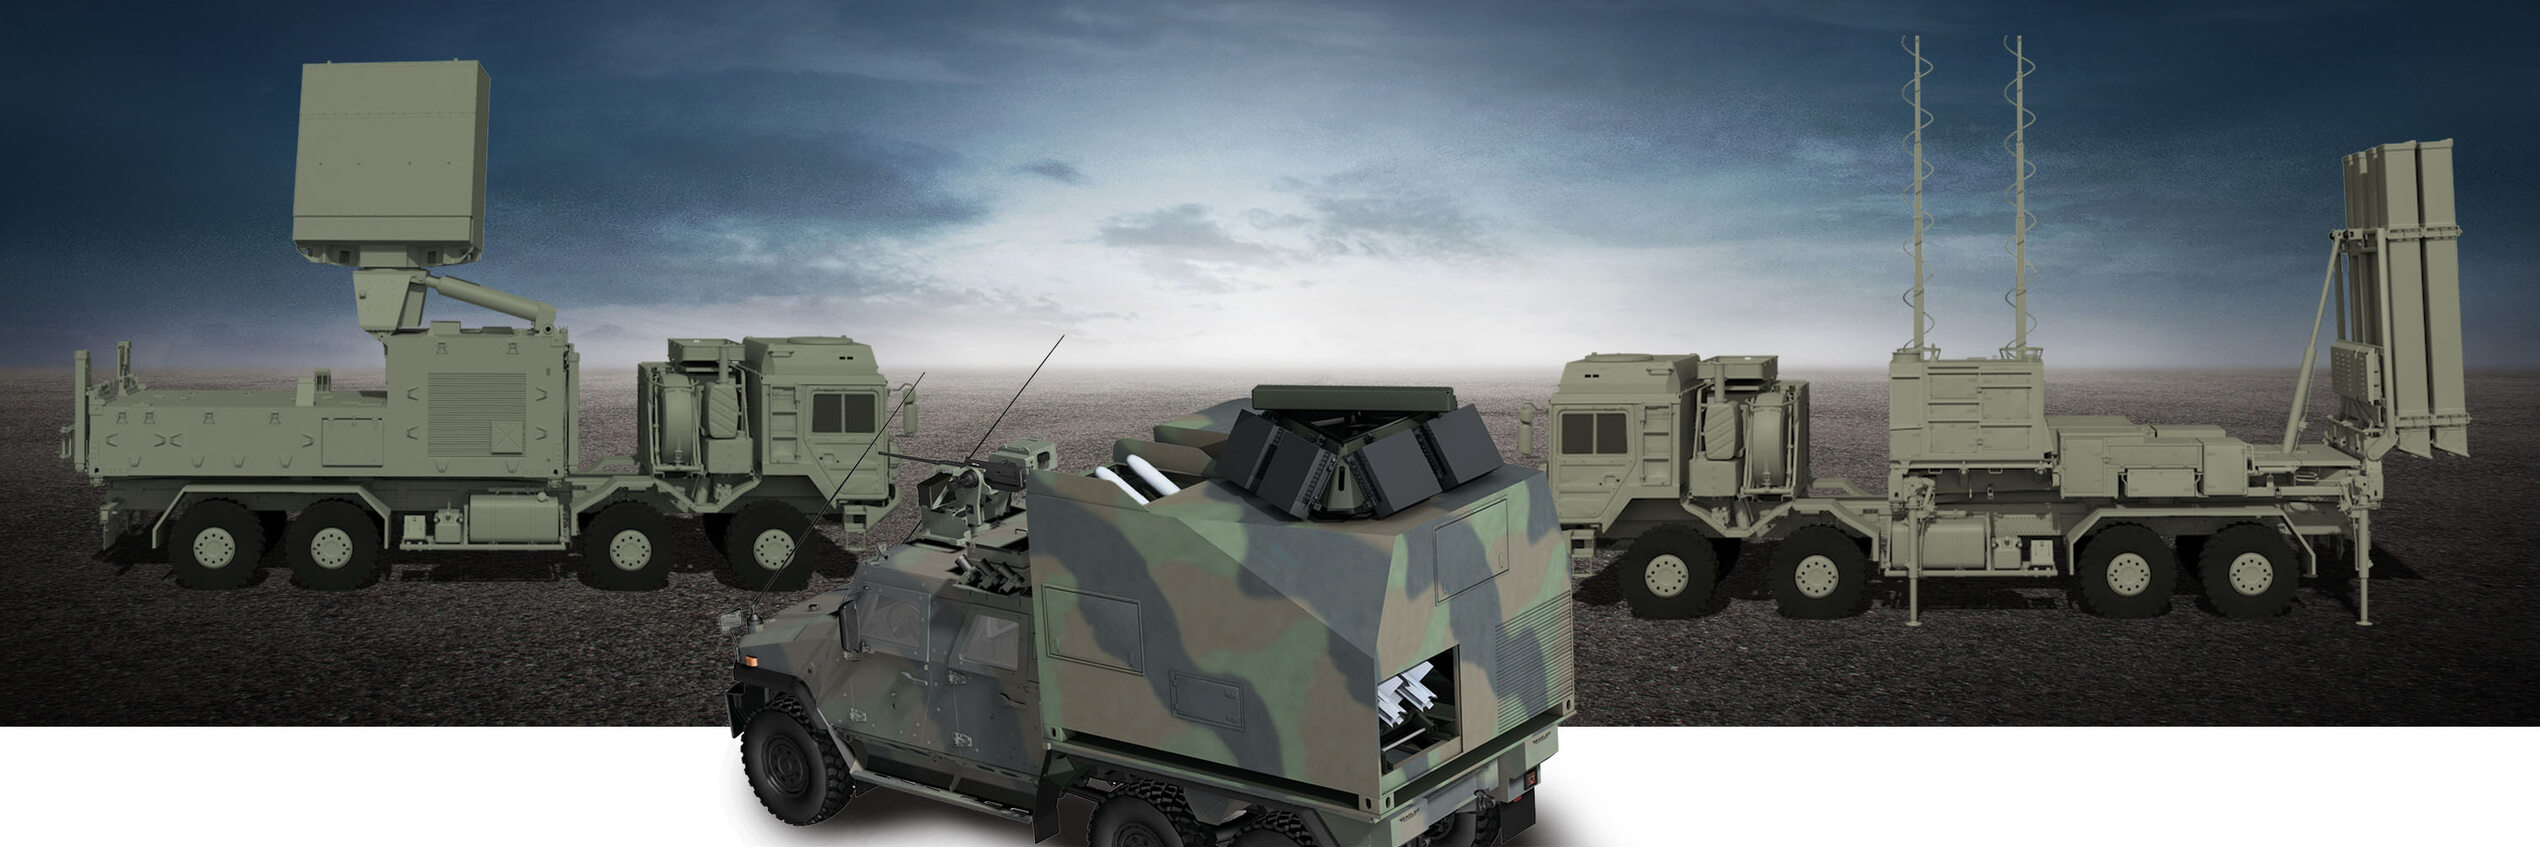 New Bundeswehr air defence system: Rheinmetall, Diehl and Hensoldt are lining up together